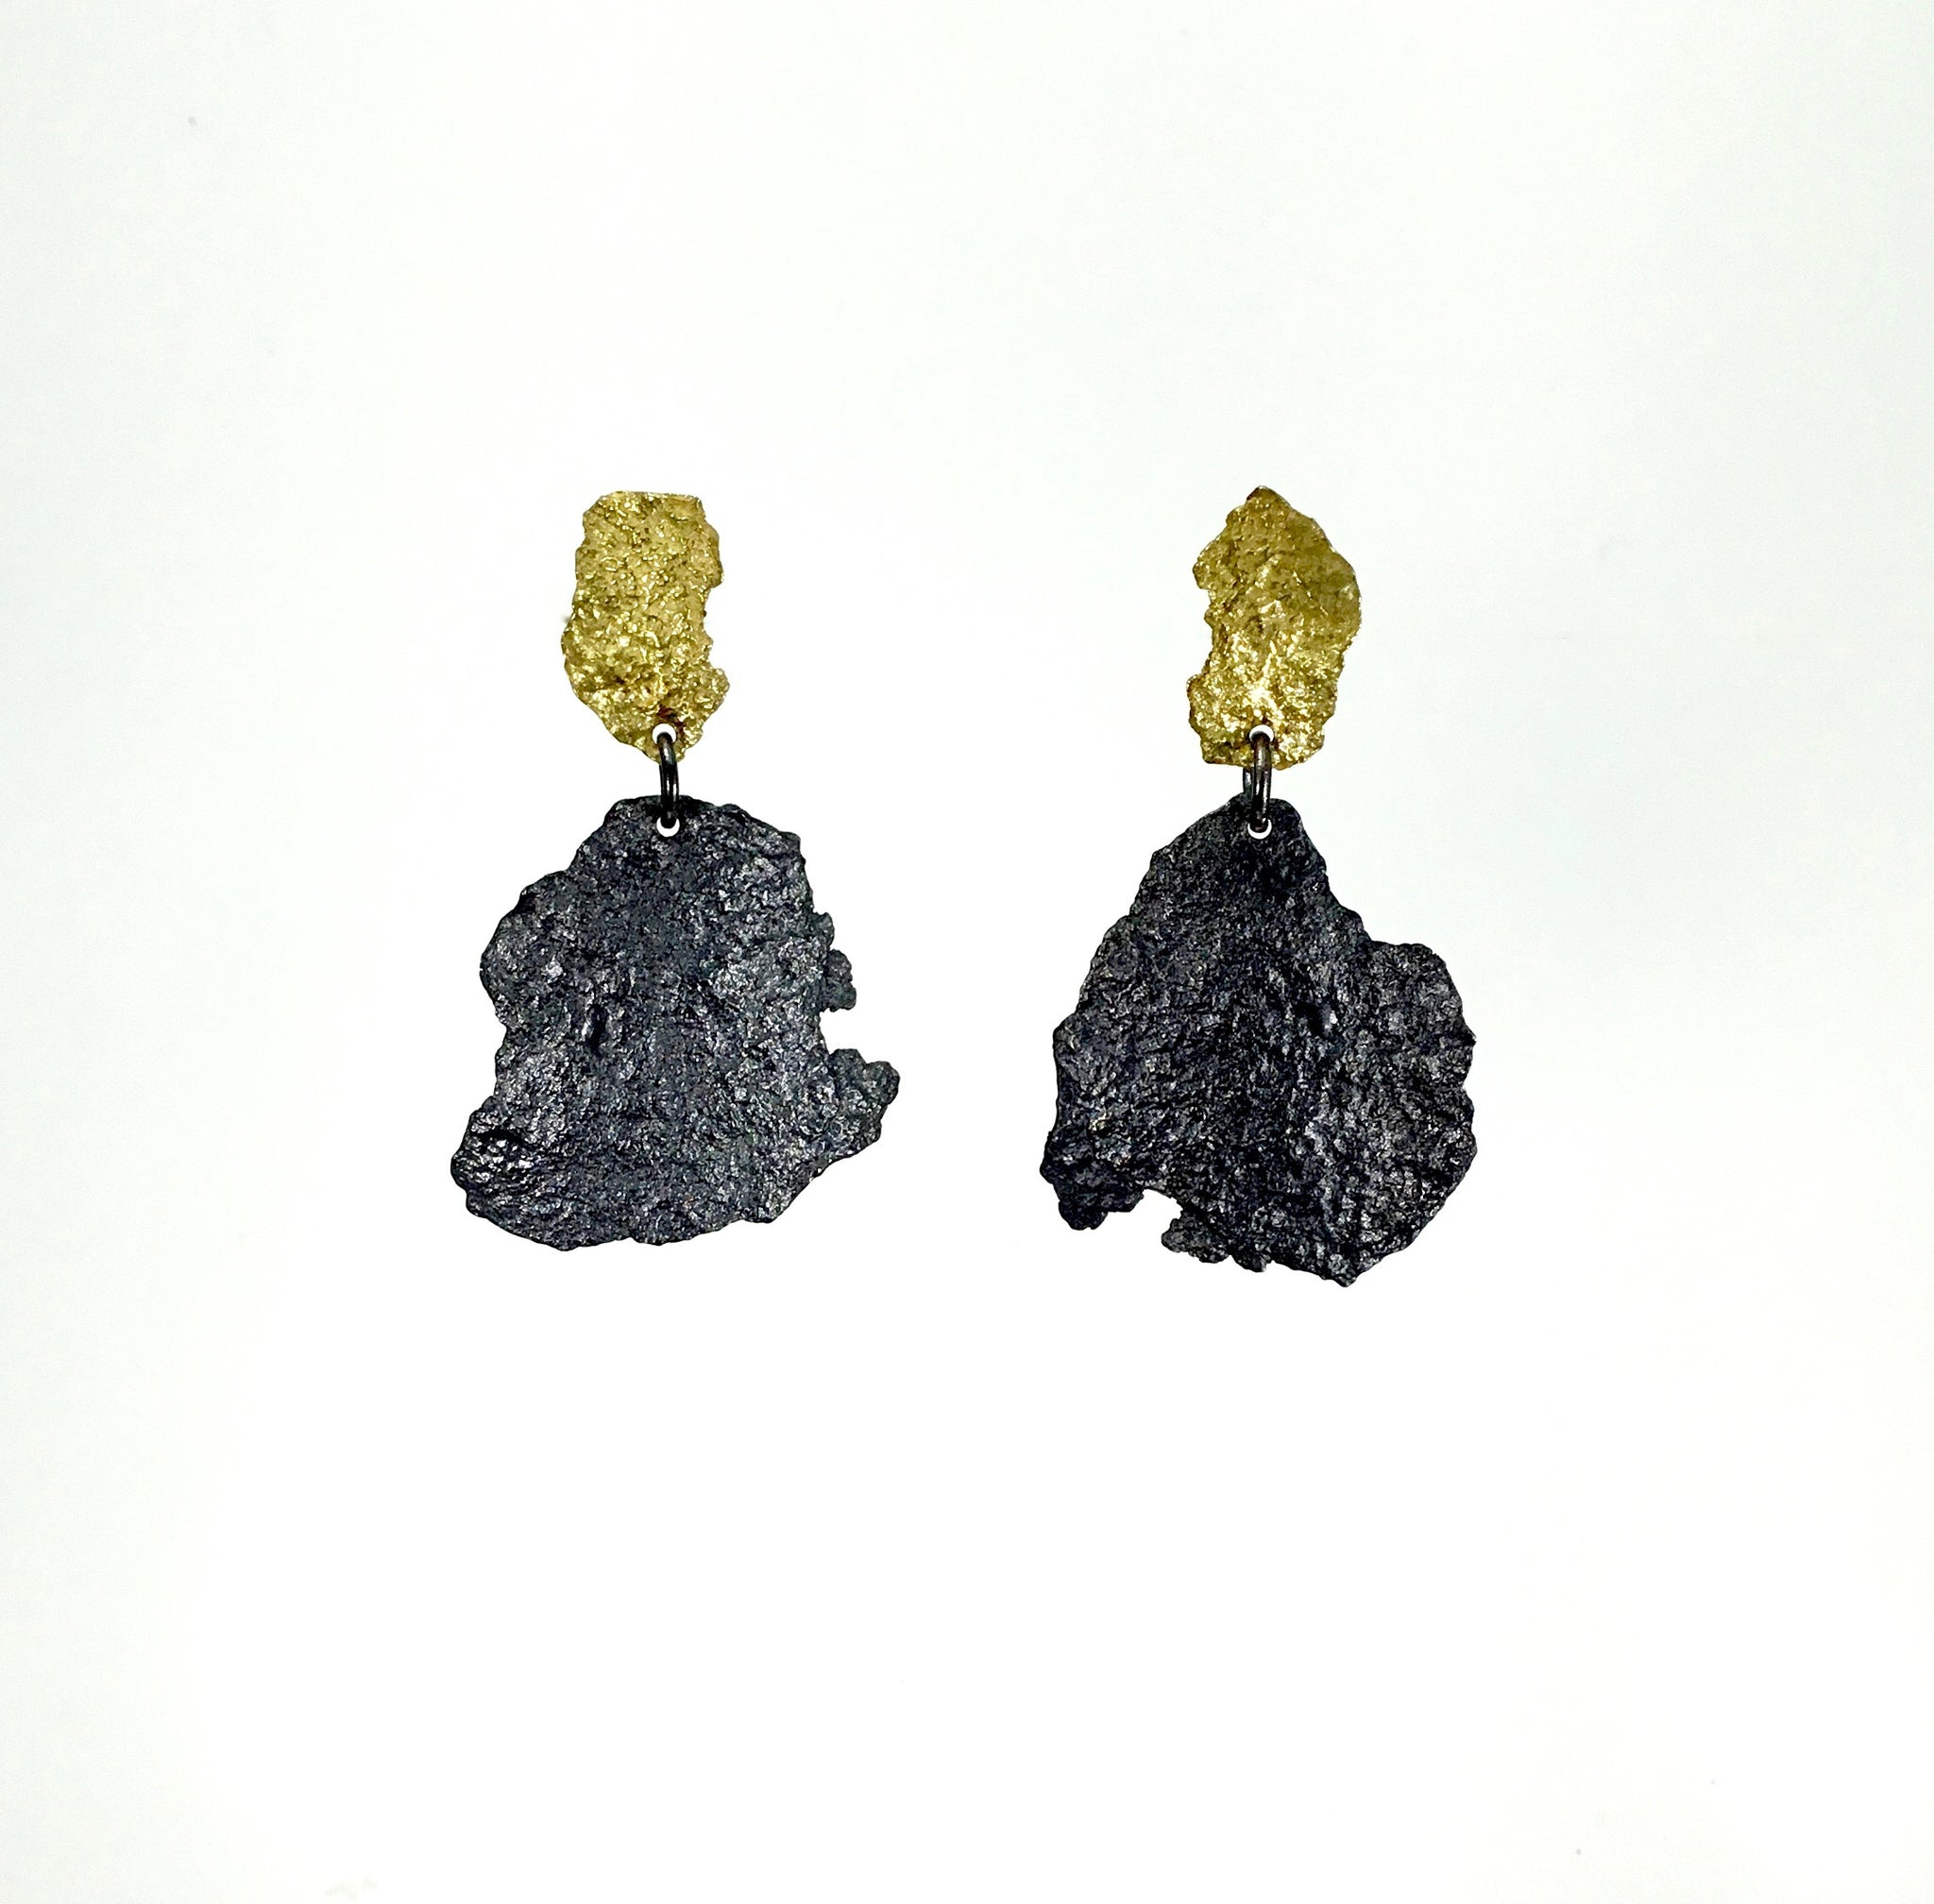 Emanuela Duca Roccia Earrings